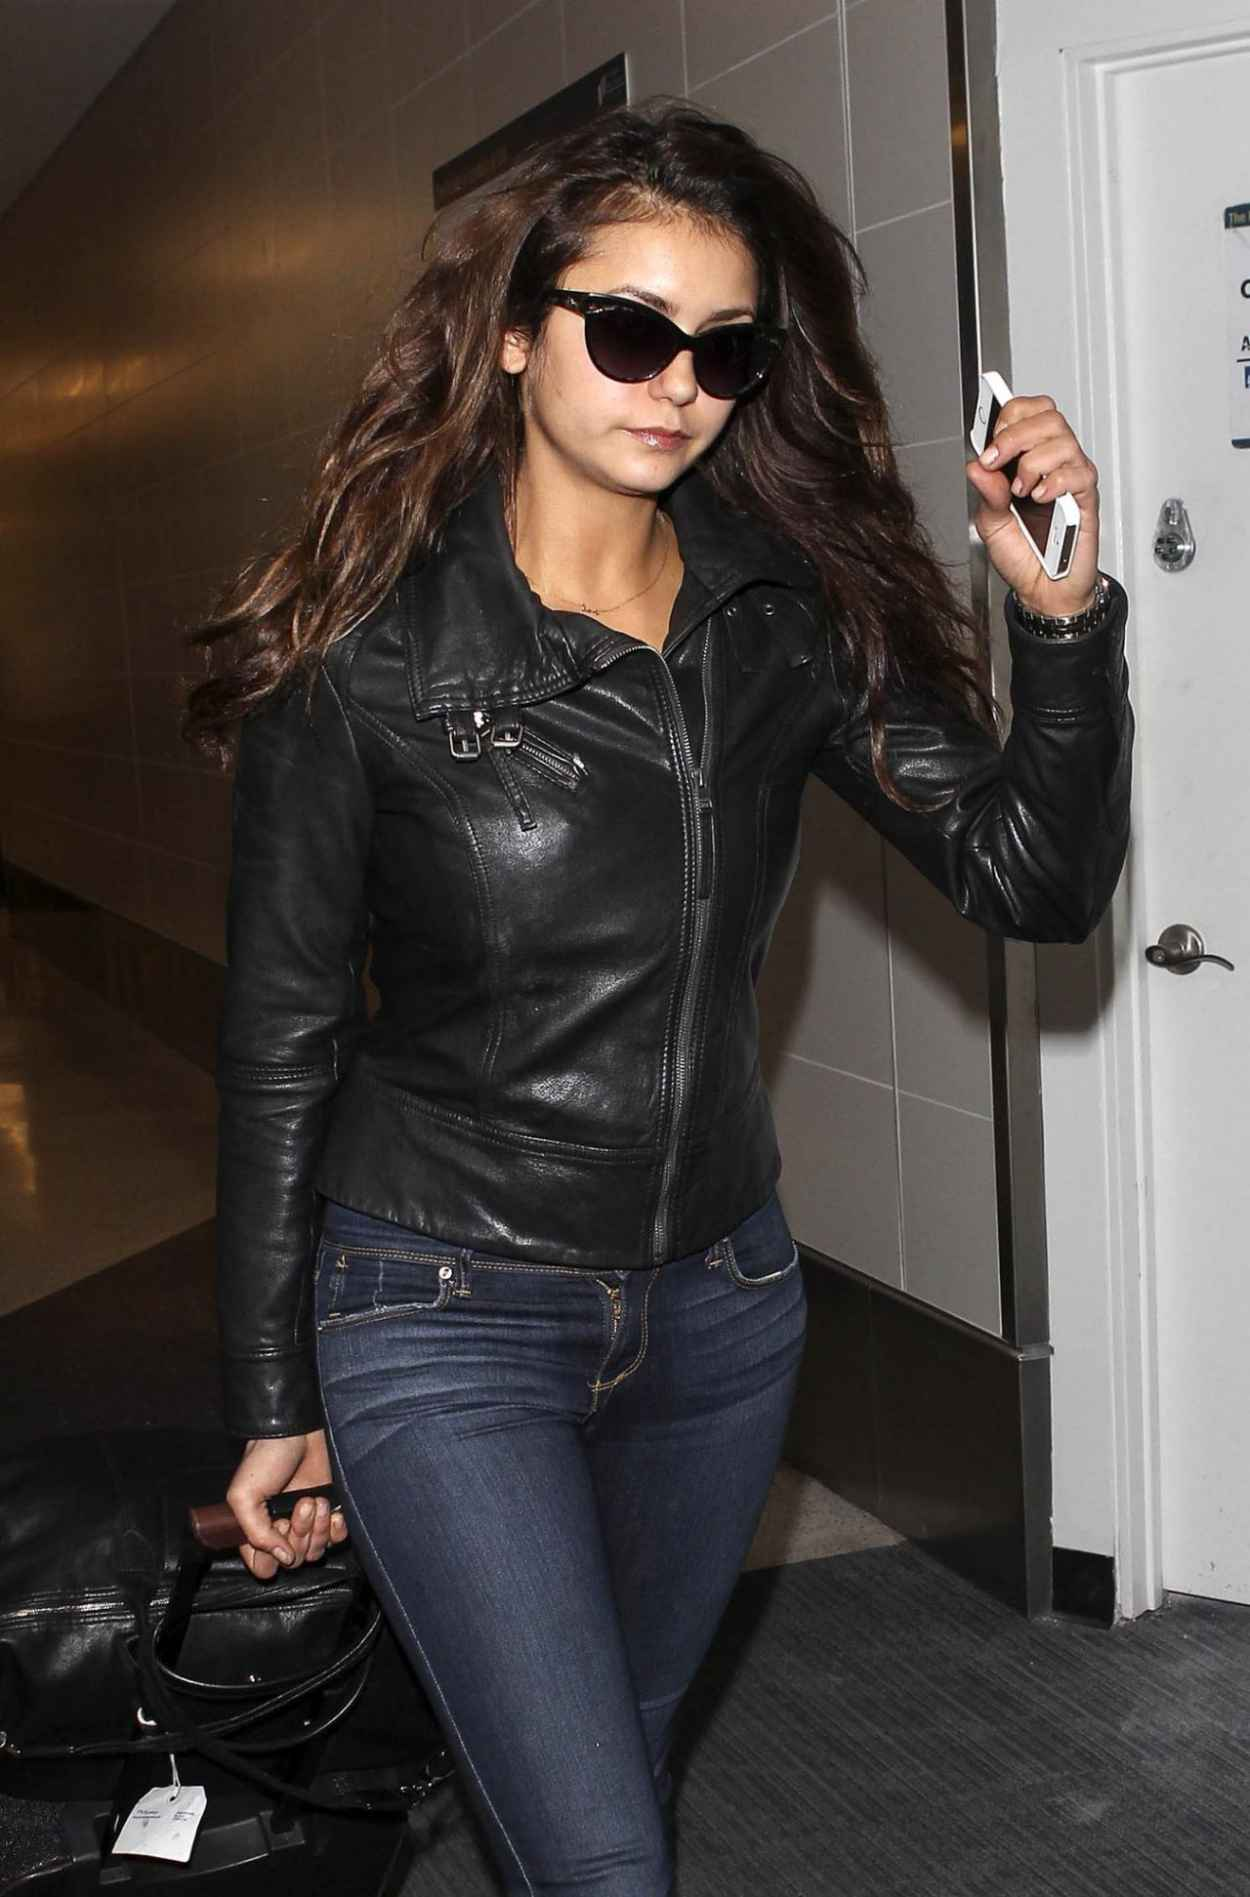 Nina Dobrev in Jeans at LAX Airport - March 2015-1